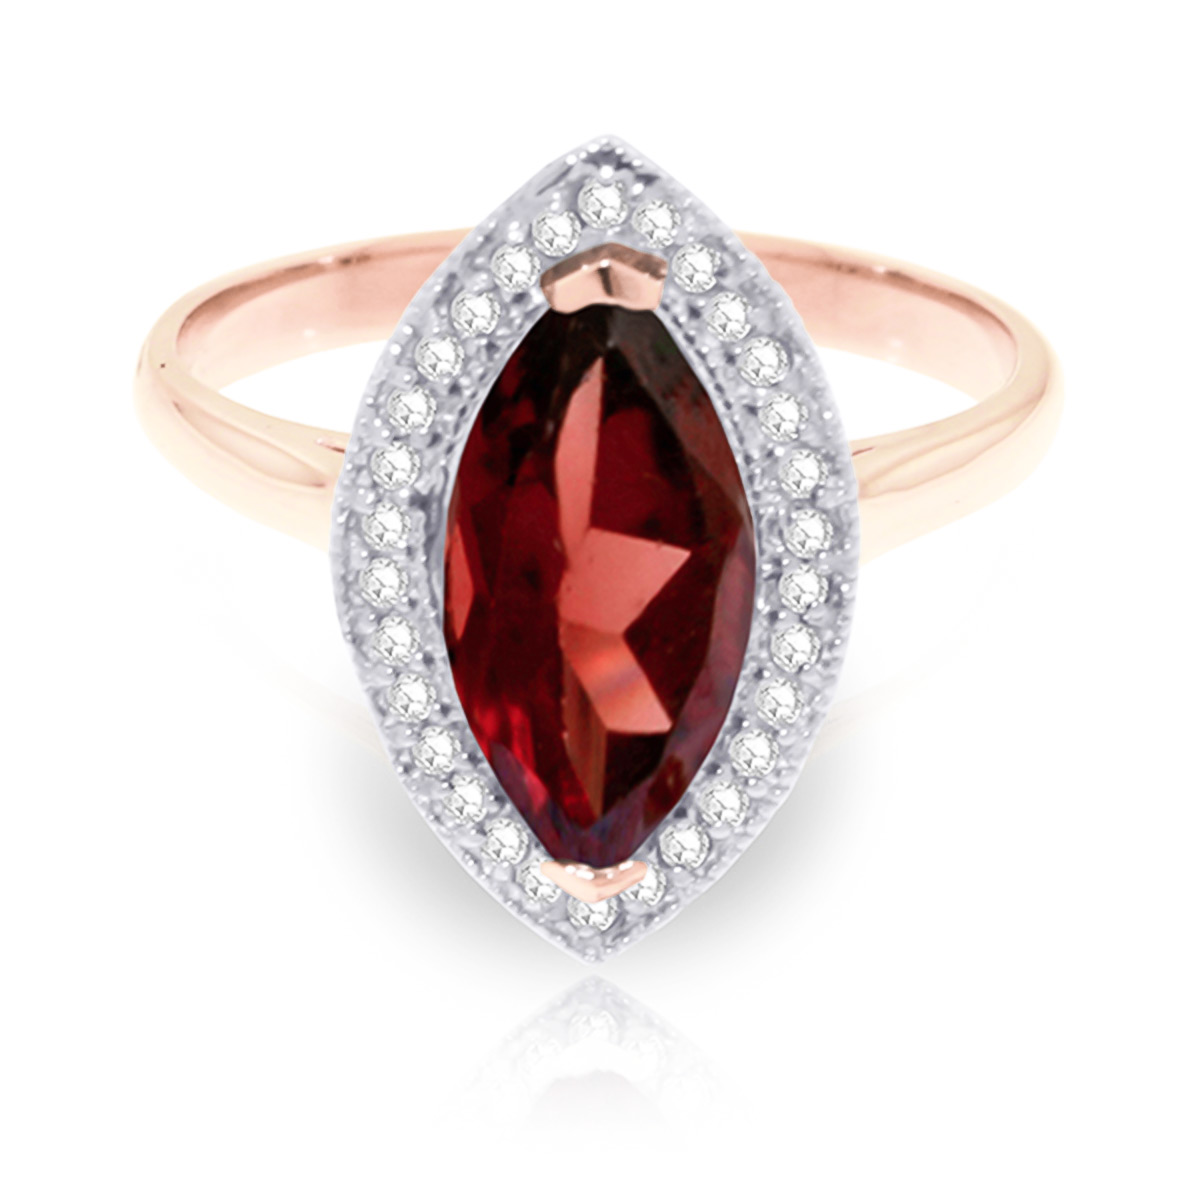 Garnet and Diamond Halo Ring 2.0ct in 9ct Rose Gold